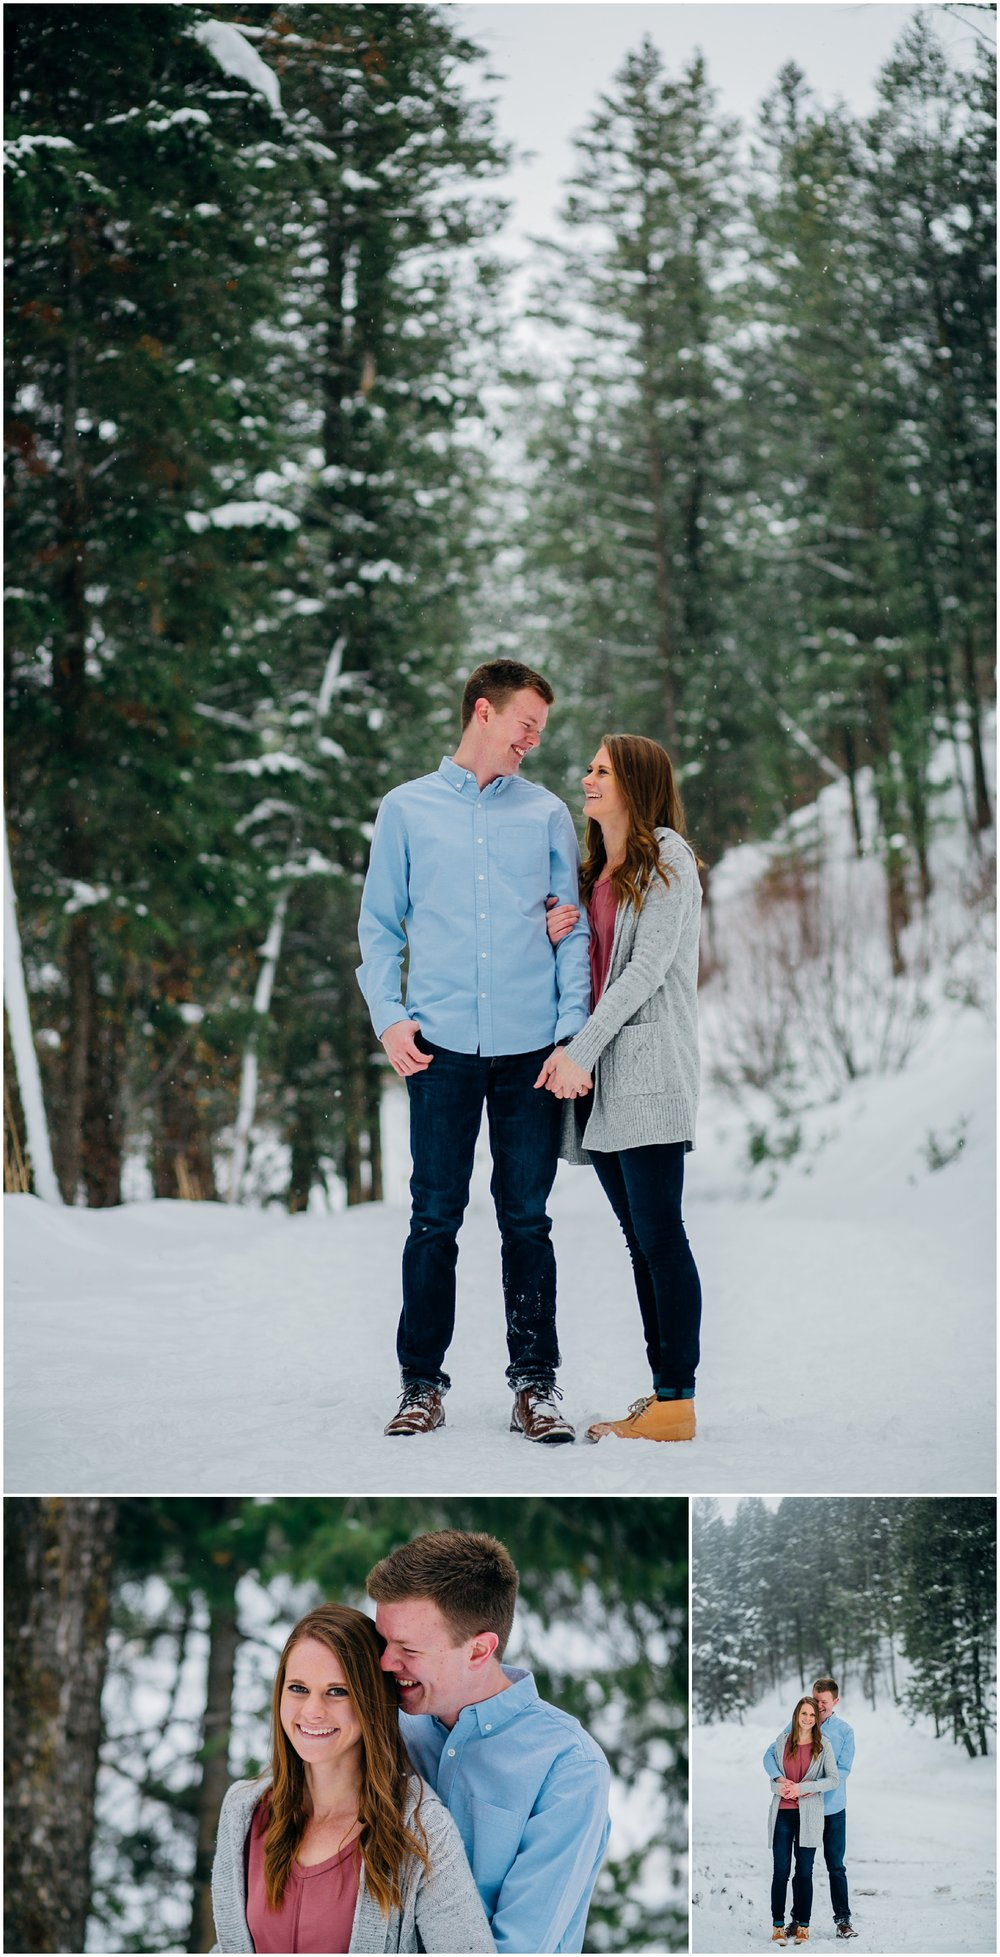 kelly-canyon-snowy-winter-engagements-idaho-wedding-elopement-photographer_0078.jpg